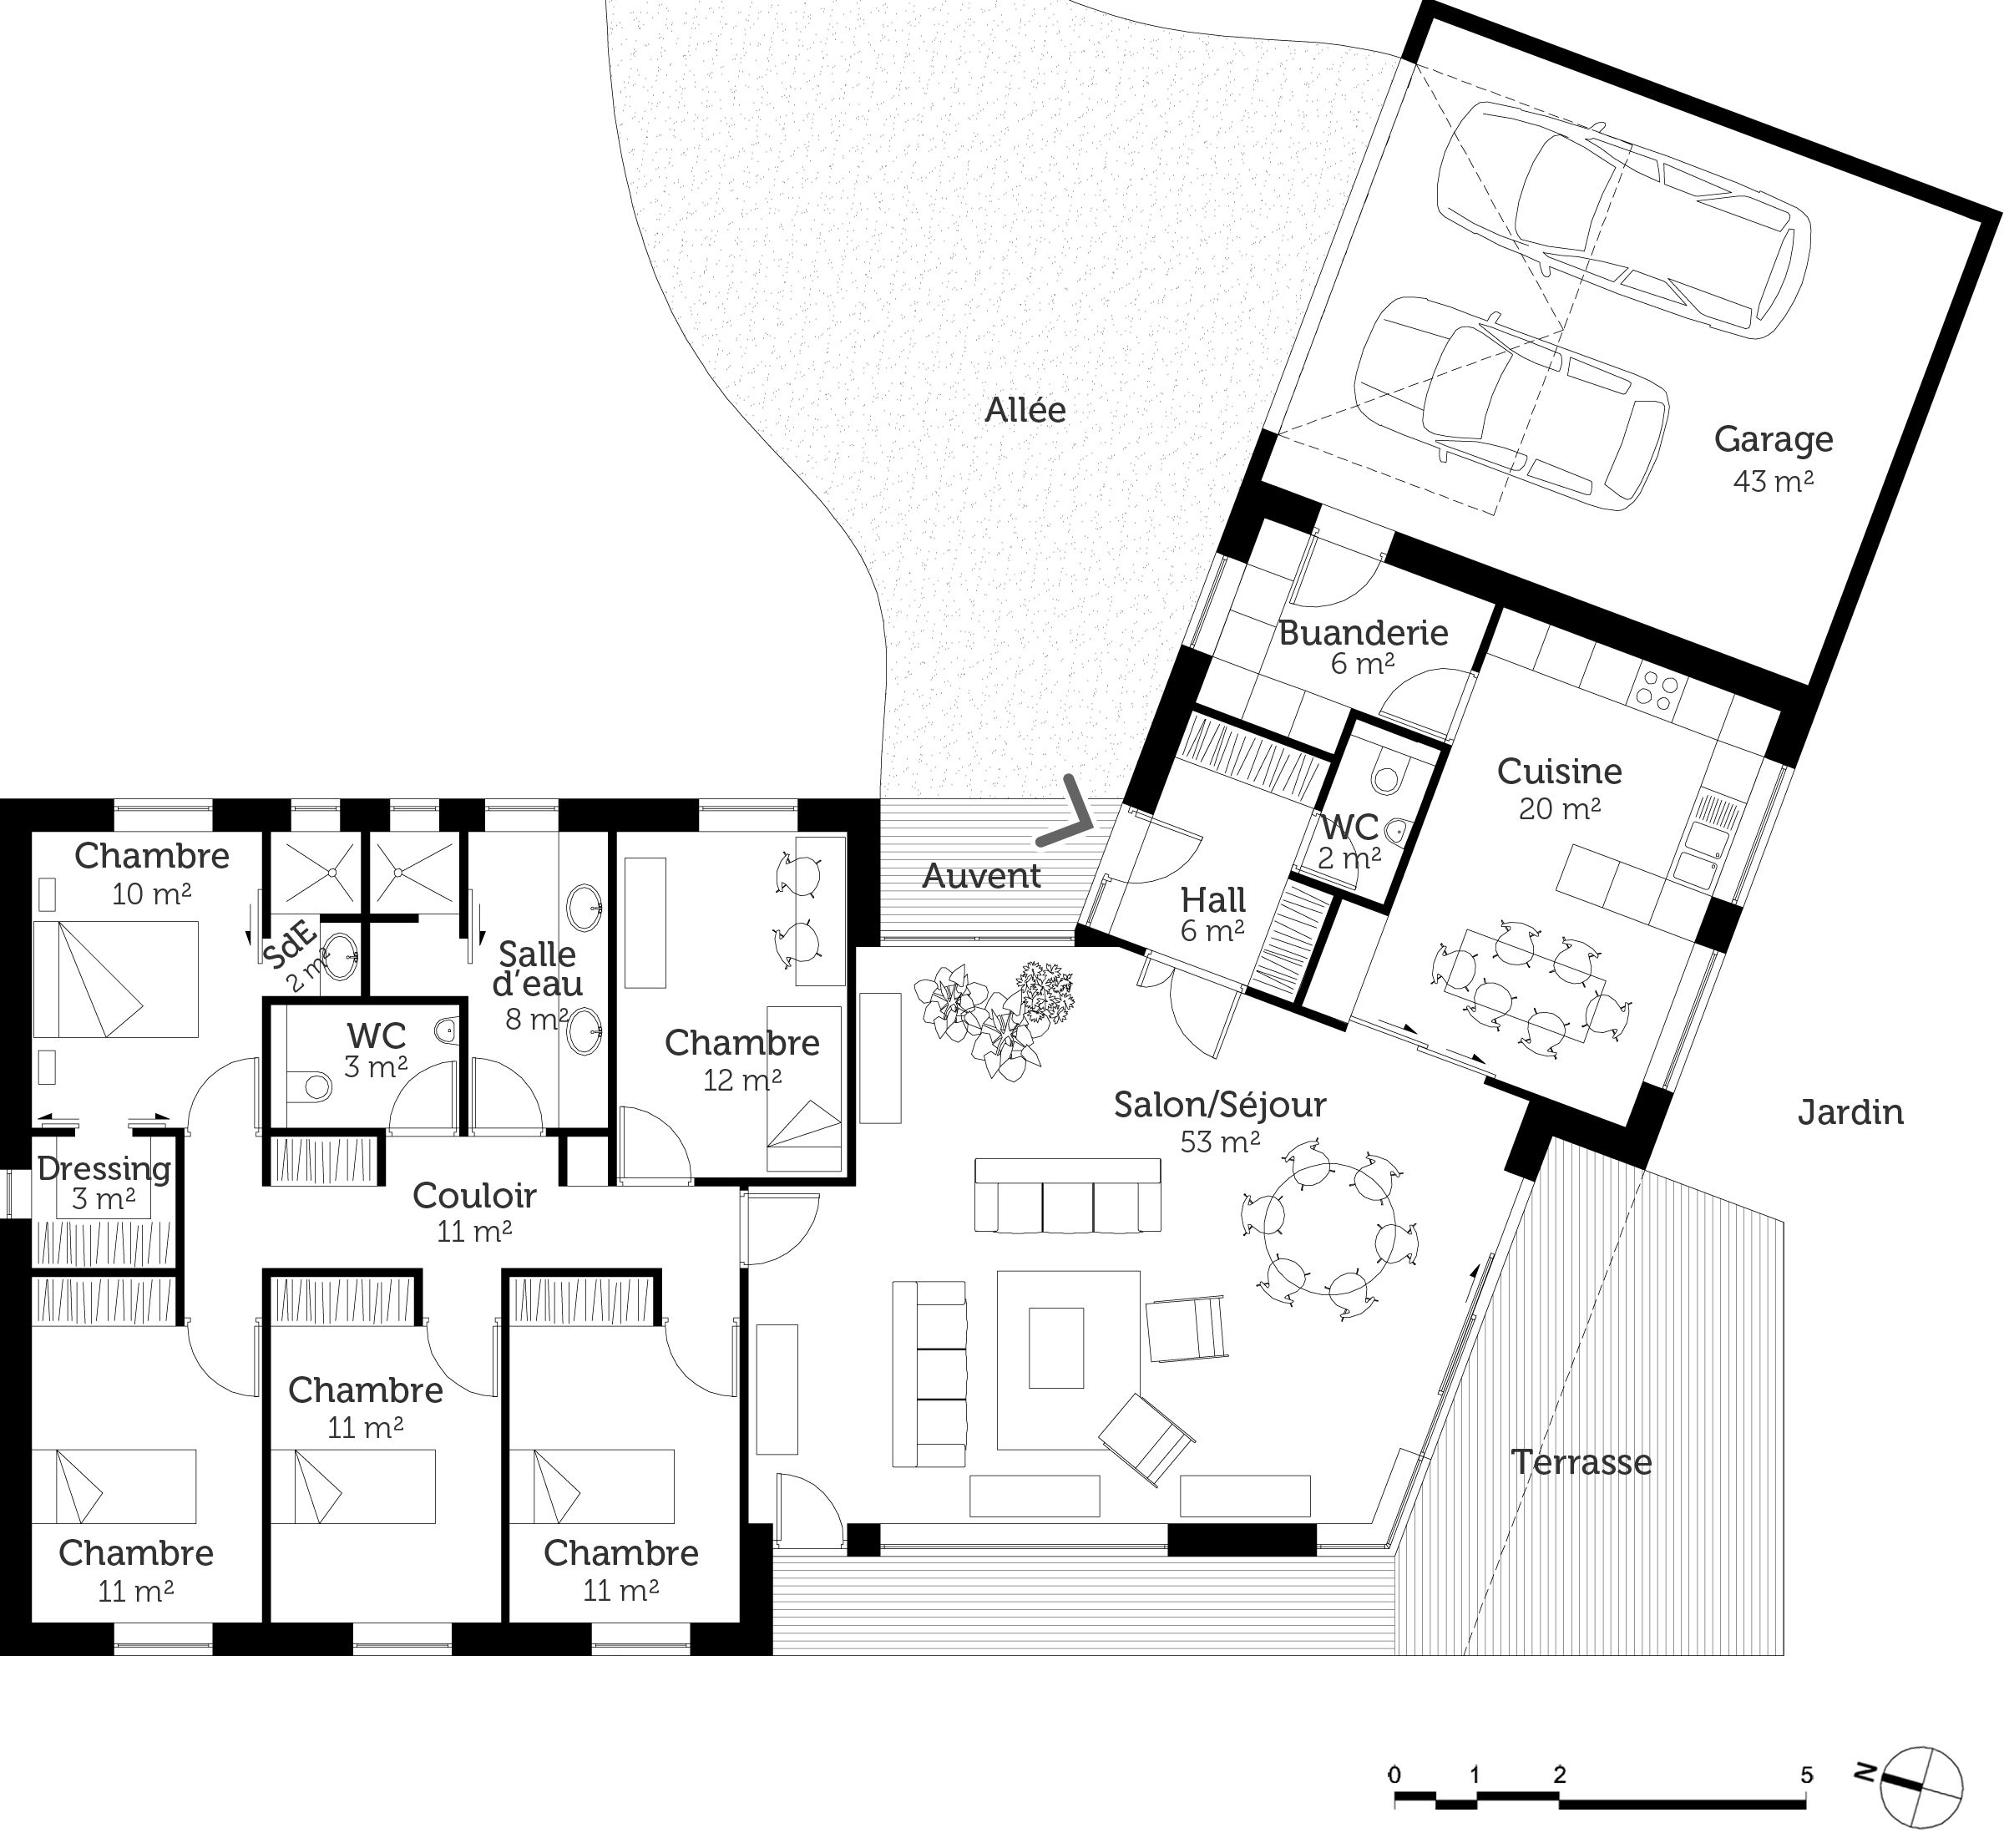 Plan au sol in 2019 bungalow floor plans house design - Plan de maison plain pied 4 chambres avec garage ...